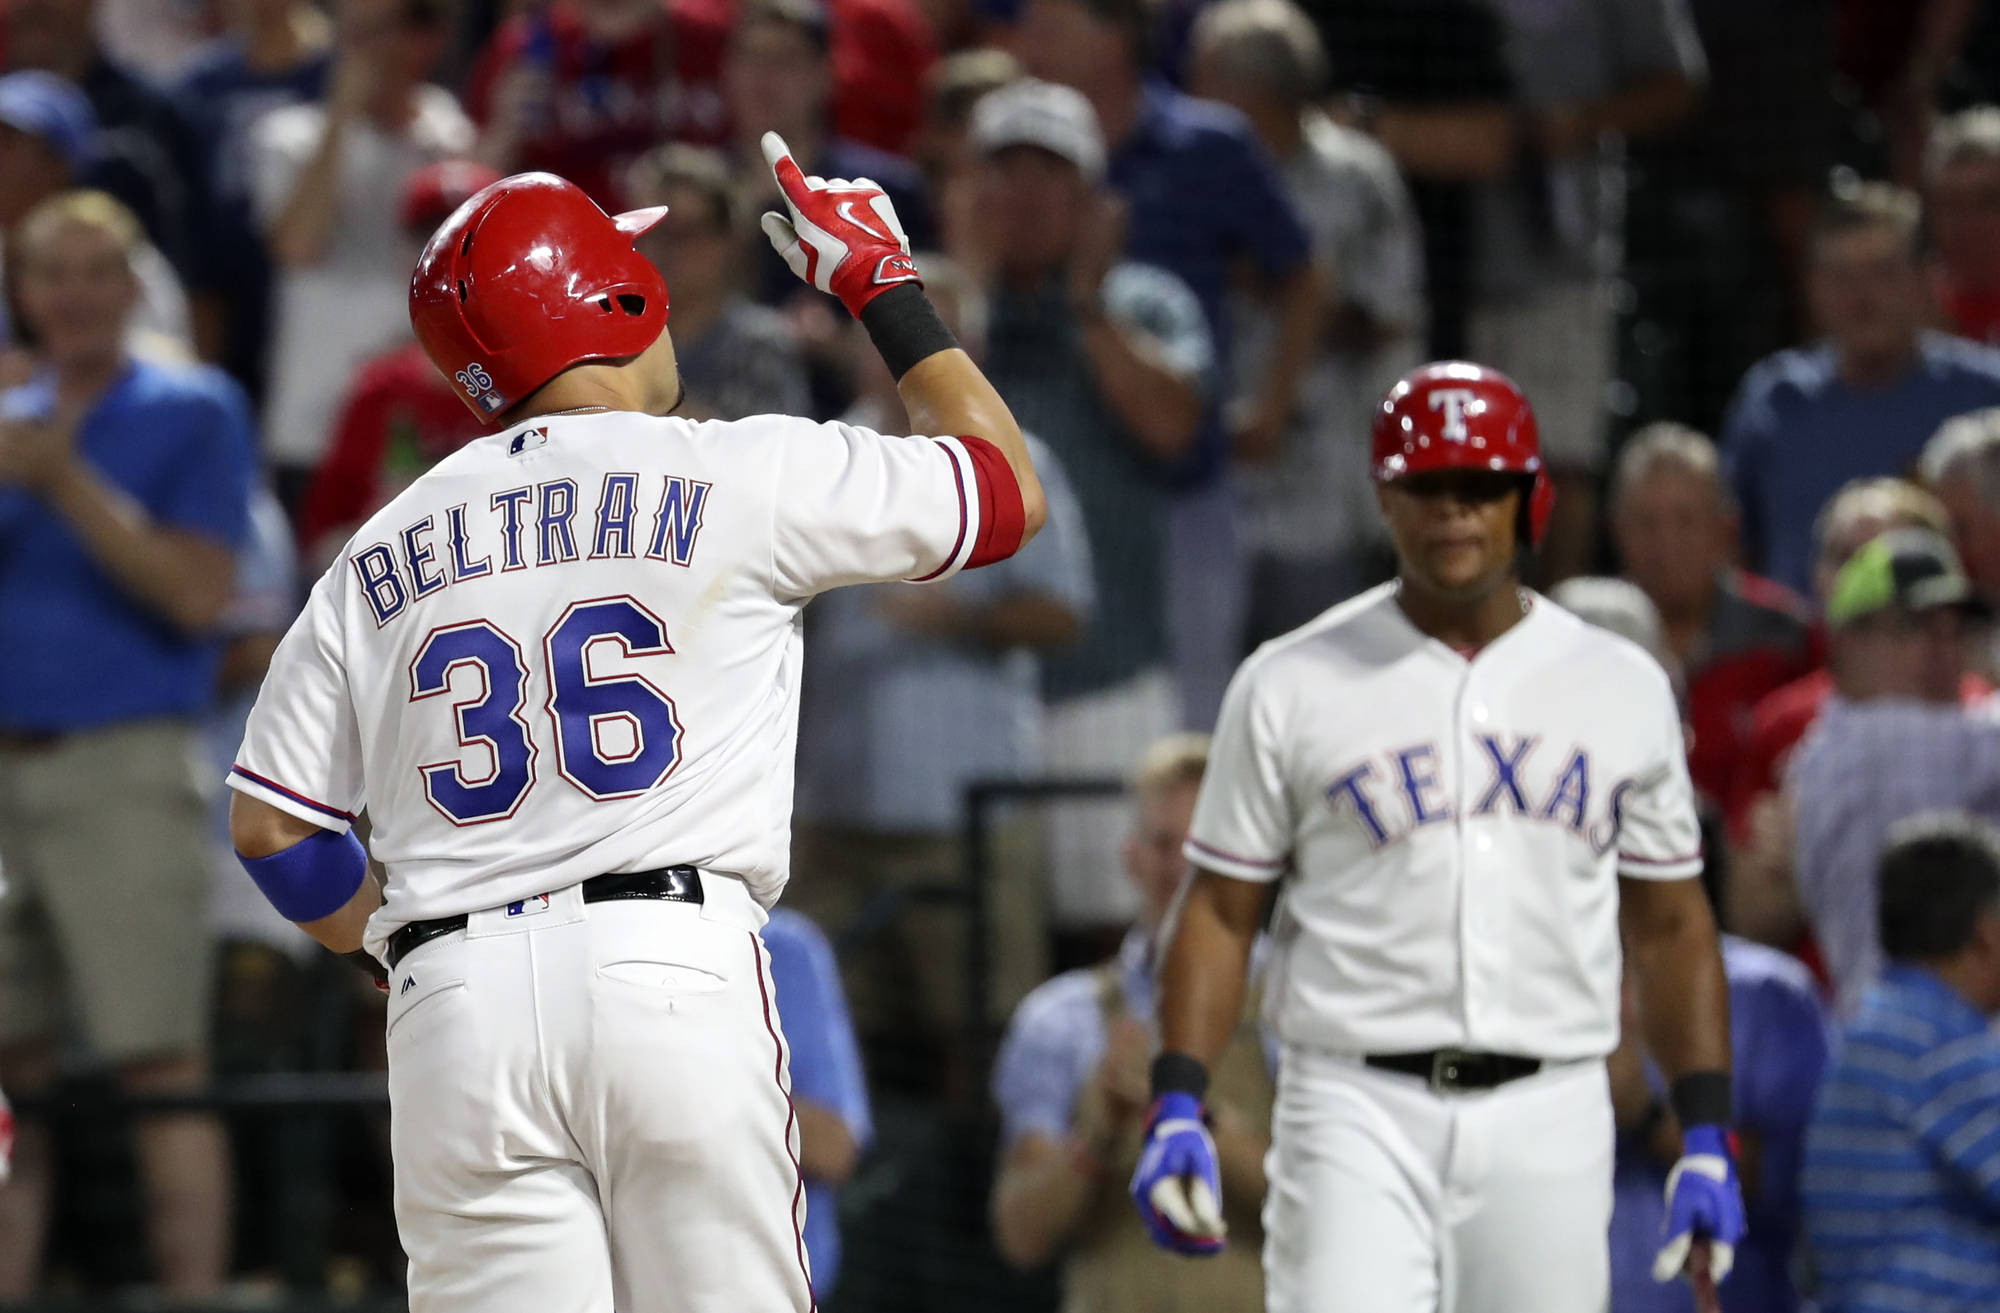 October Glory for Rangers Could Cement HOF Legacies of Beltre and Beltran